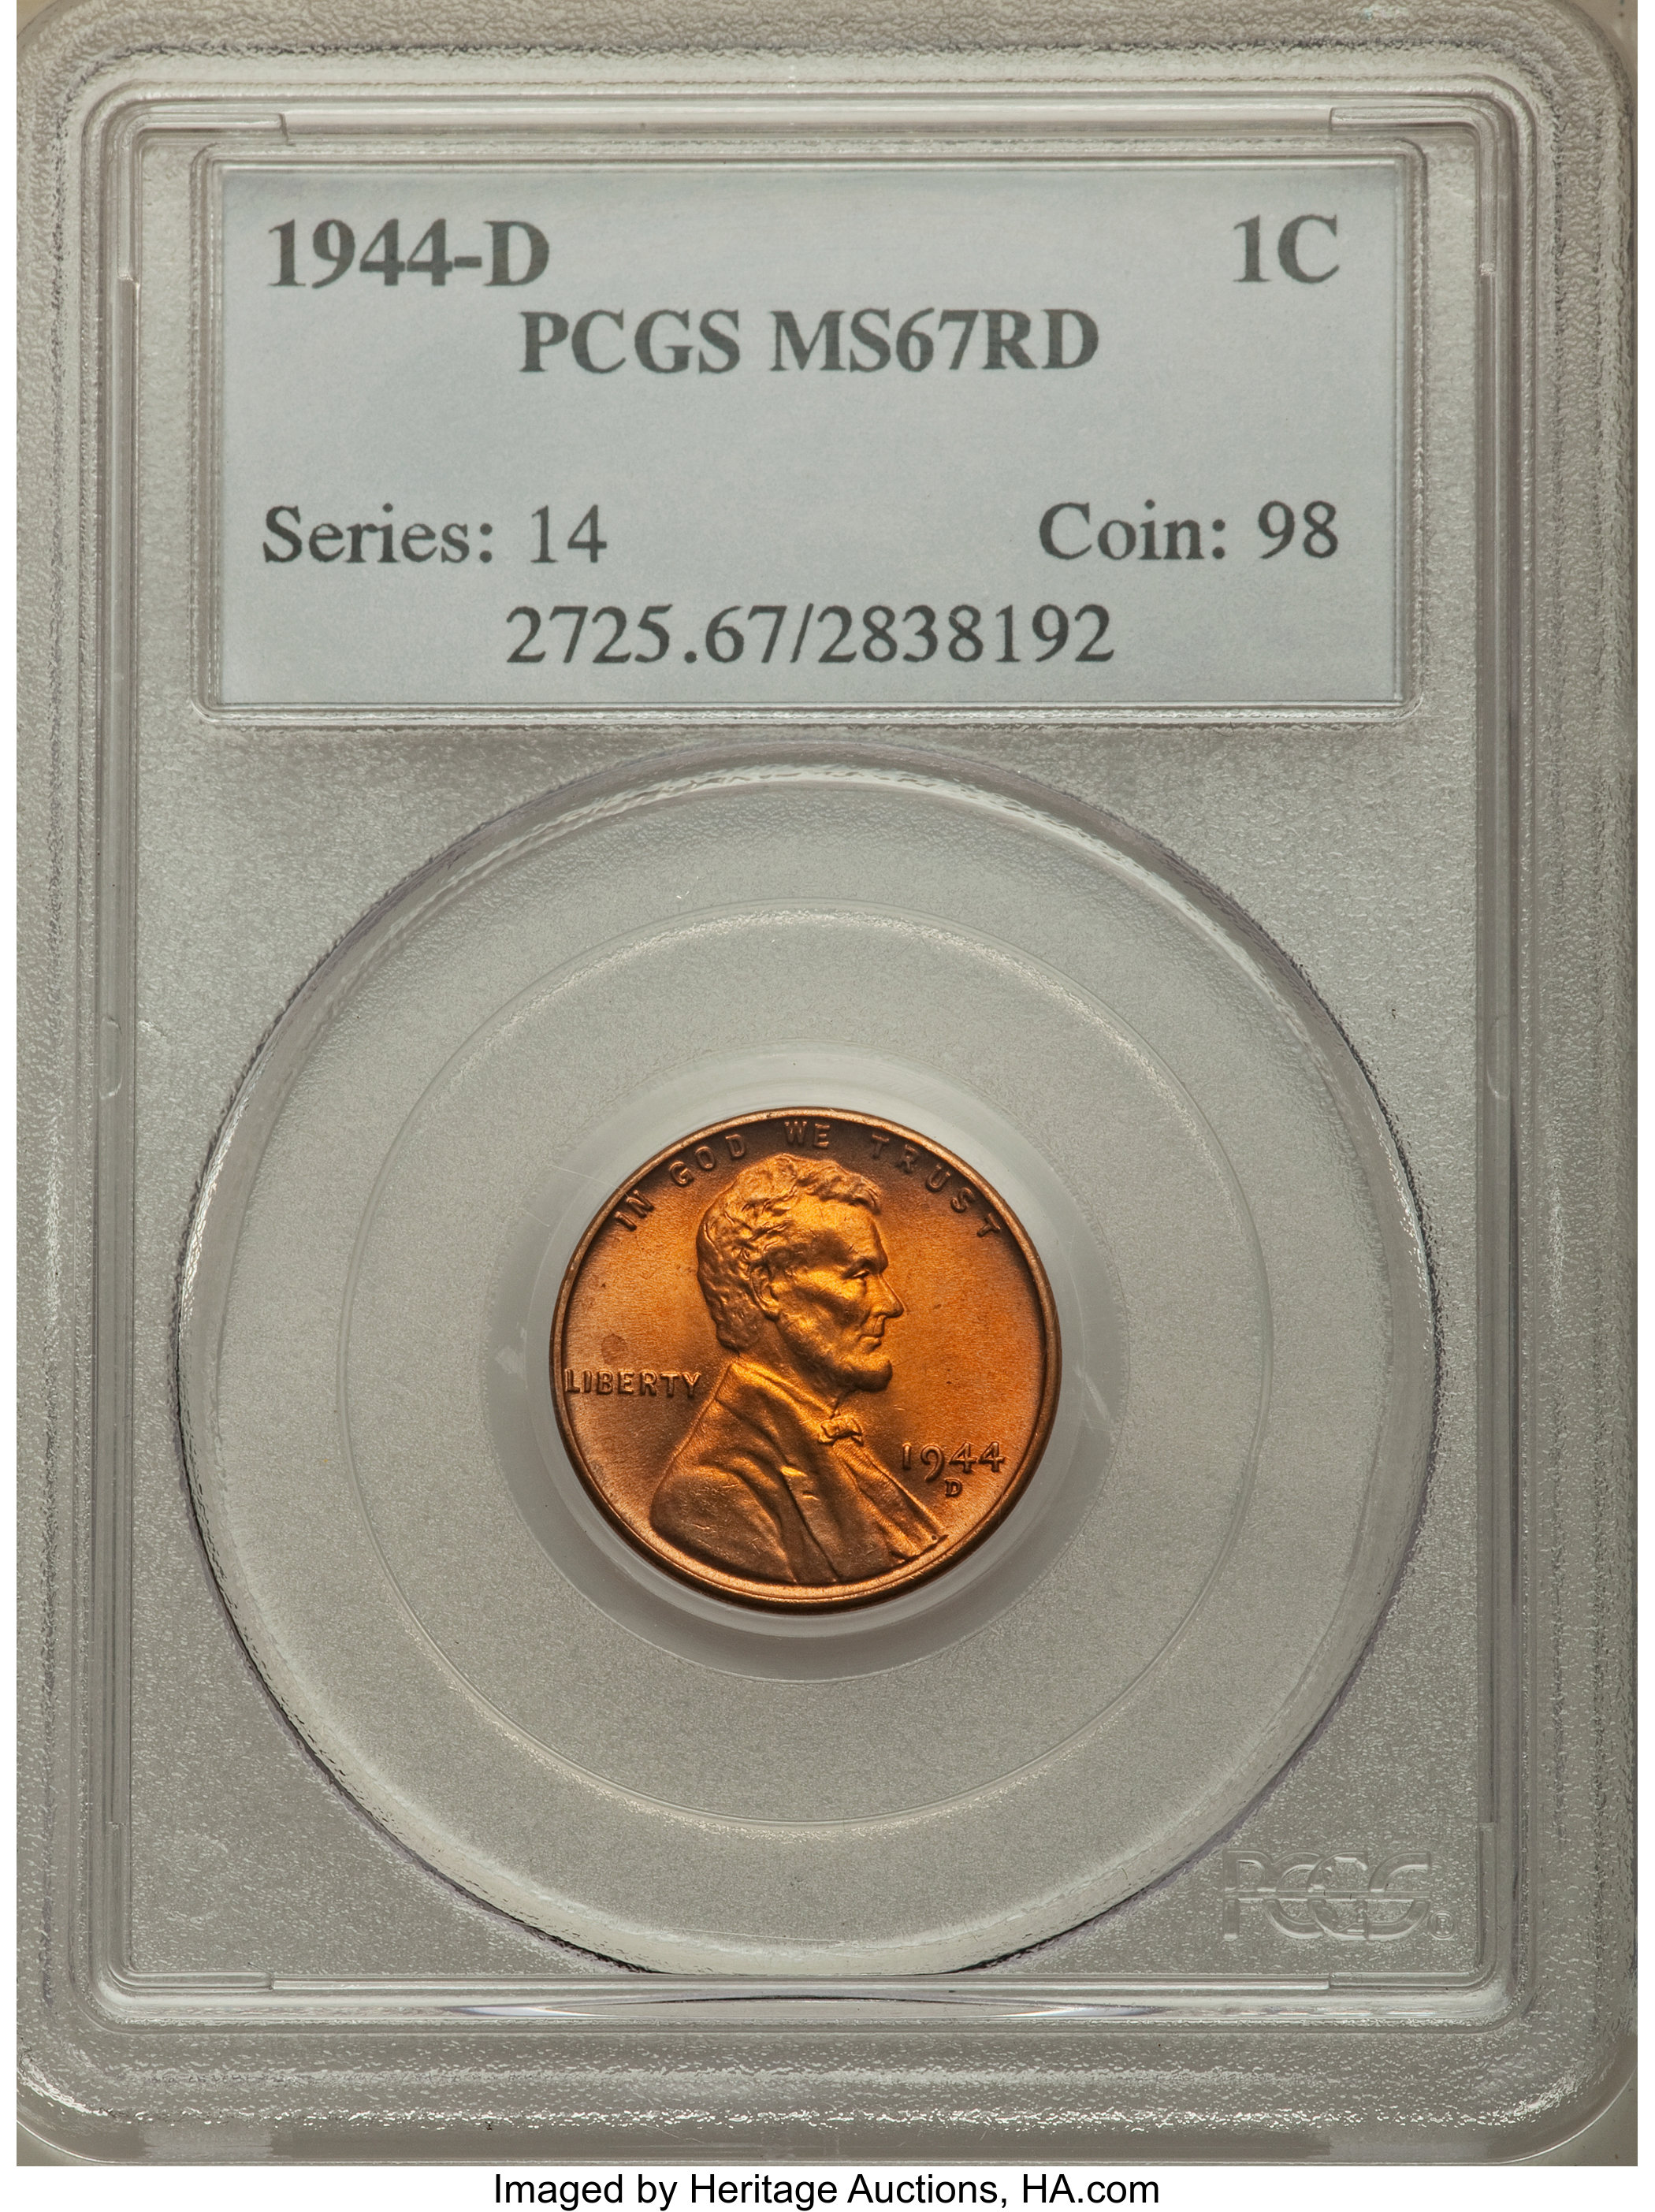 NGC Certified MS 67 RD 1992 D Lincoln 1c